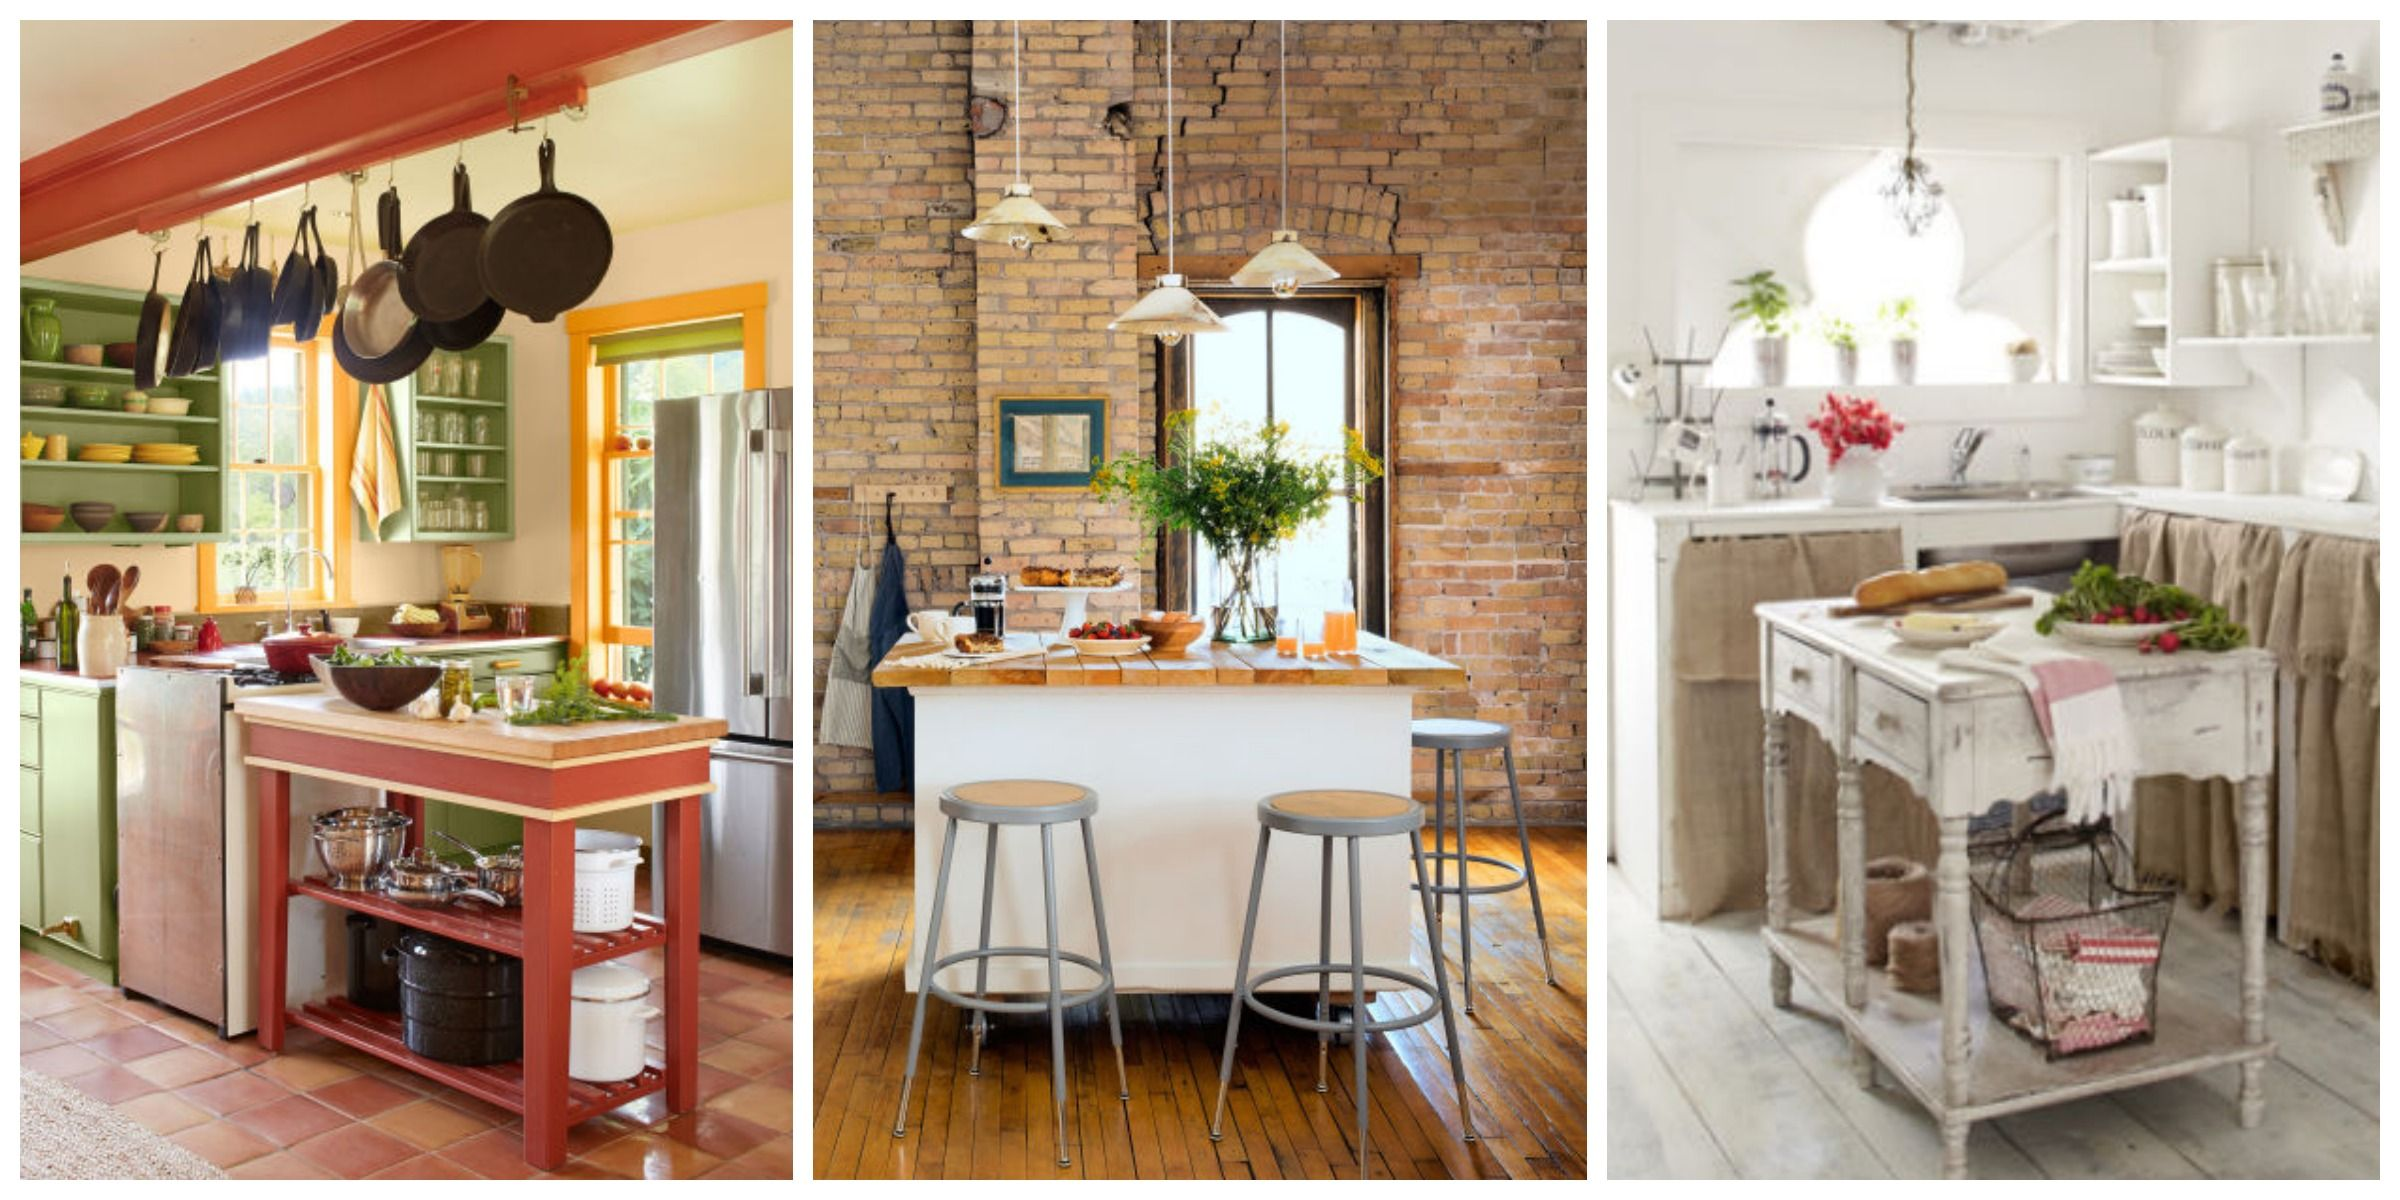 50 Great Ideas for Kitchen Islands